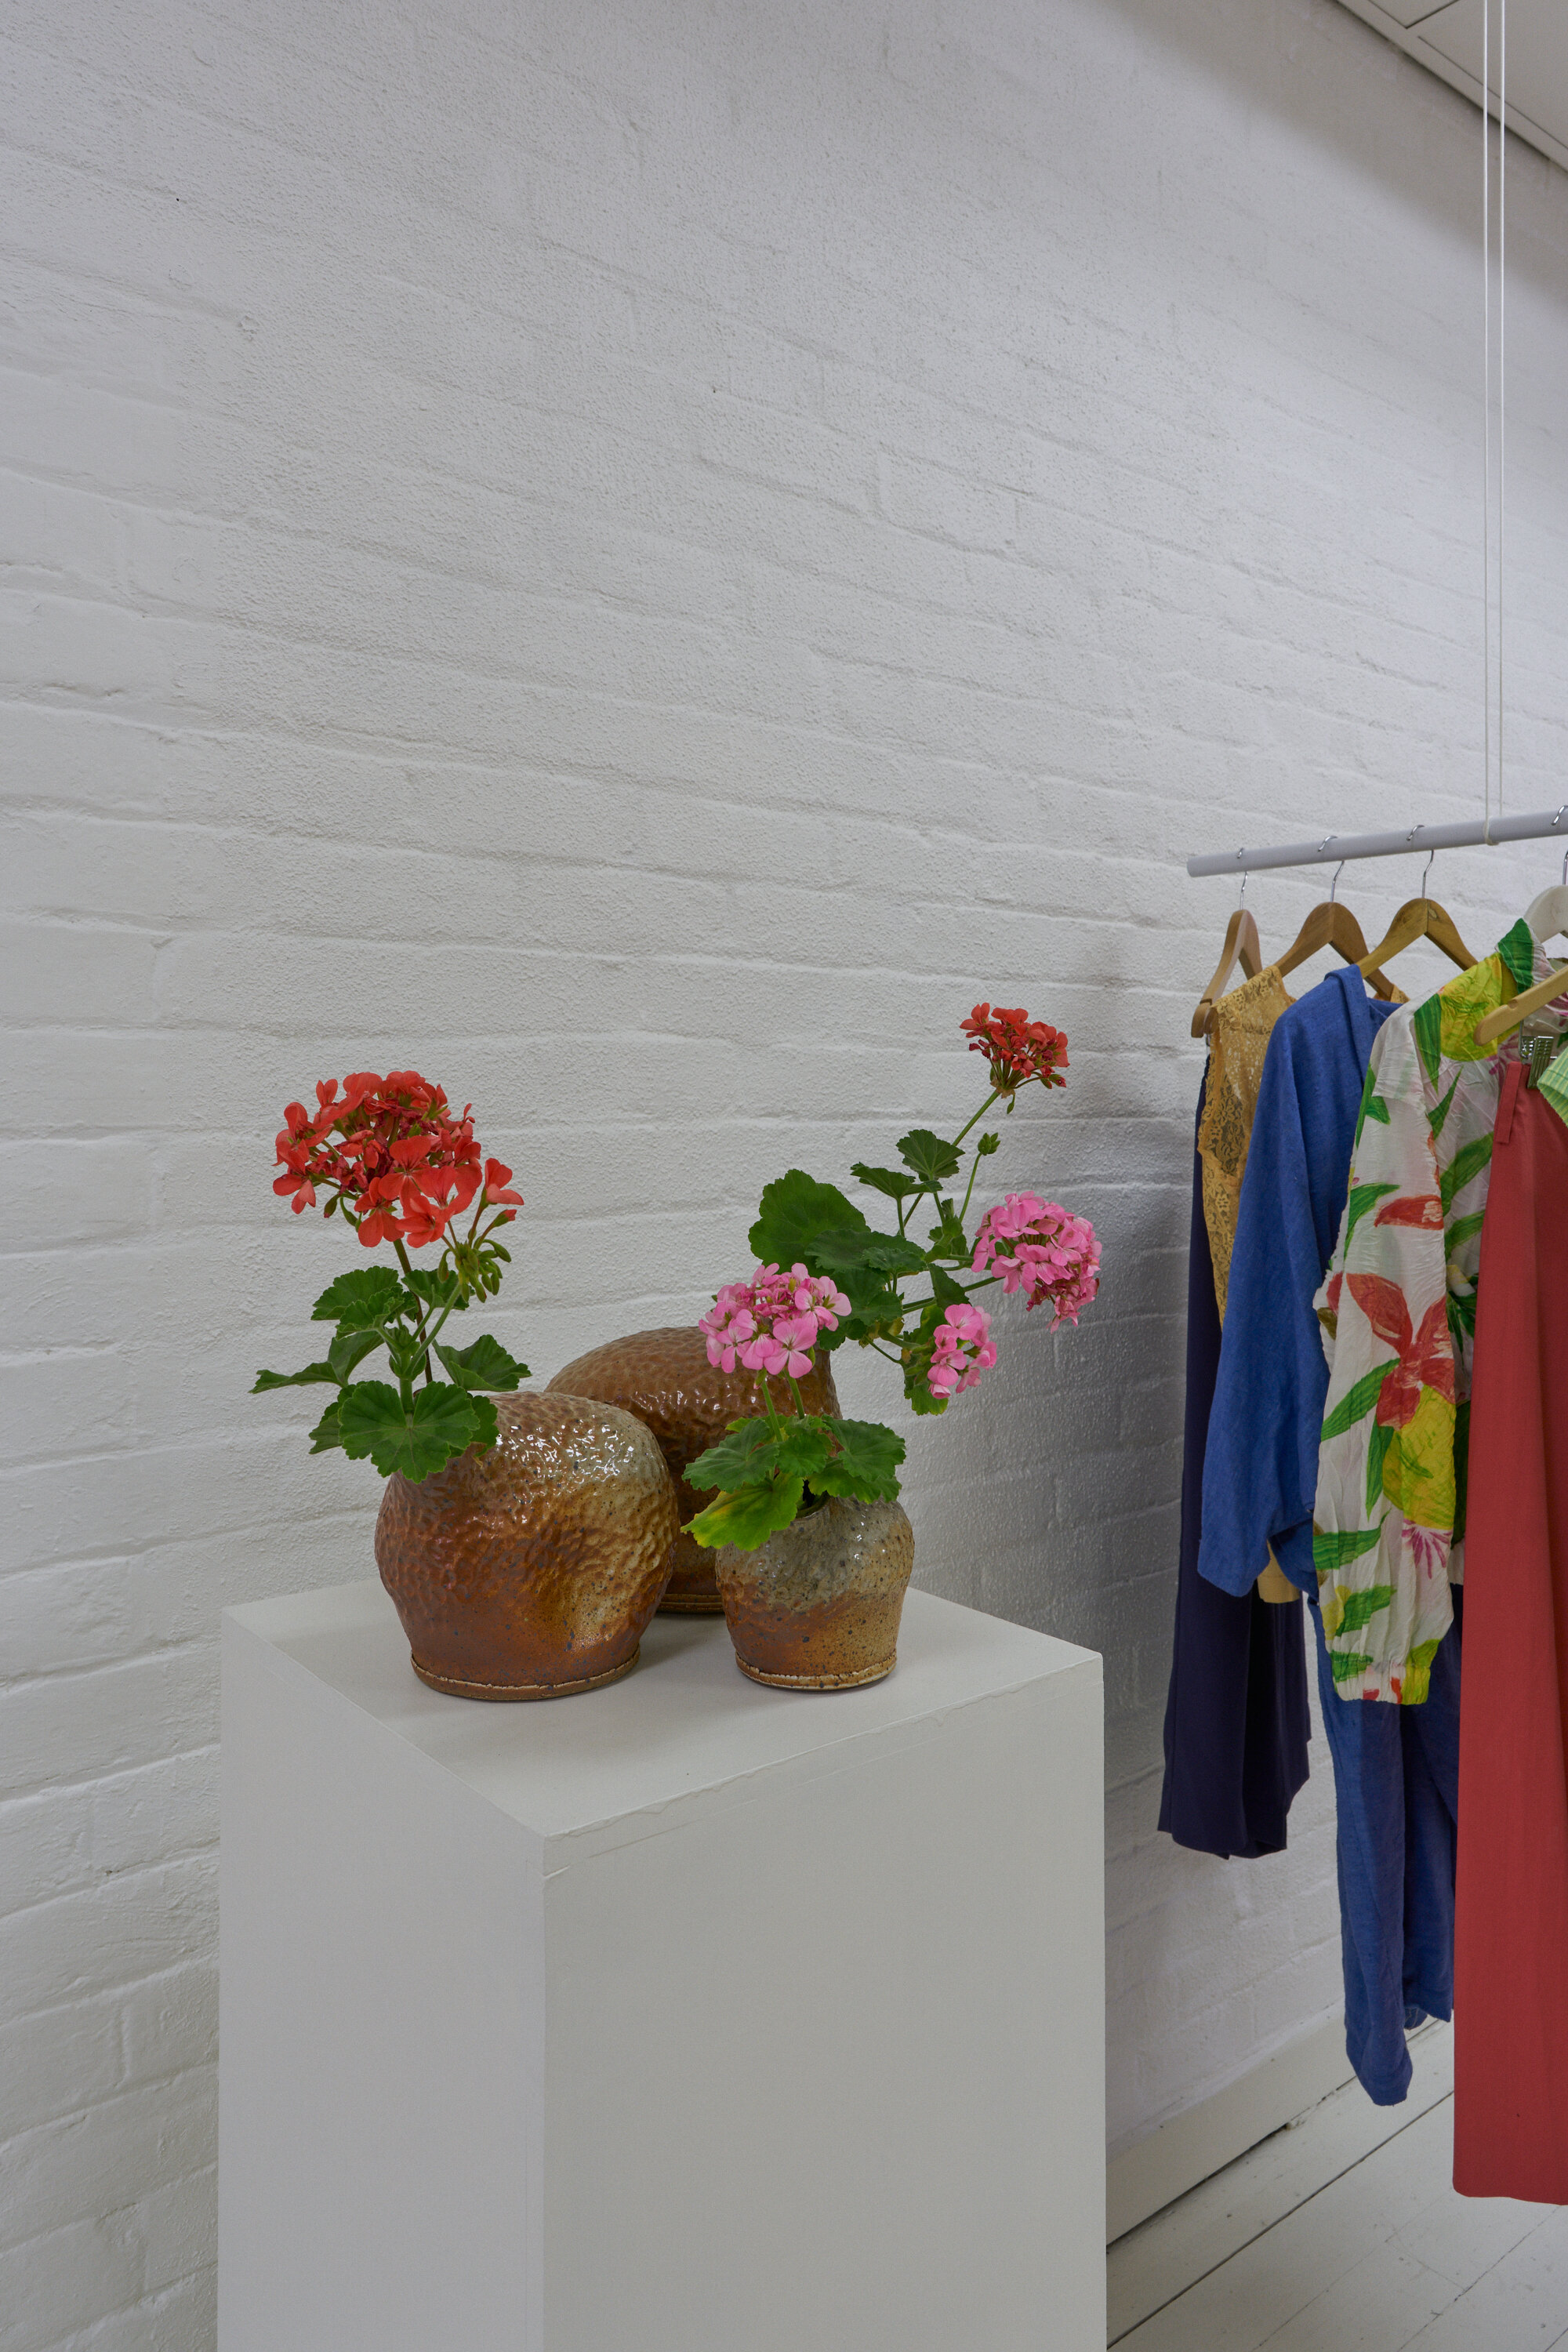 20191014_a flat shop [floral arrangements documentation_hannah vorrath-pajak]_DSC06310.jpg